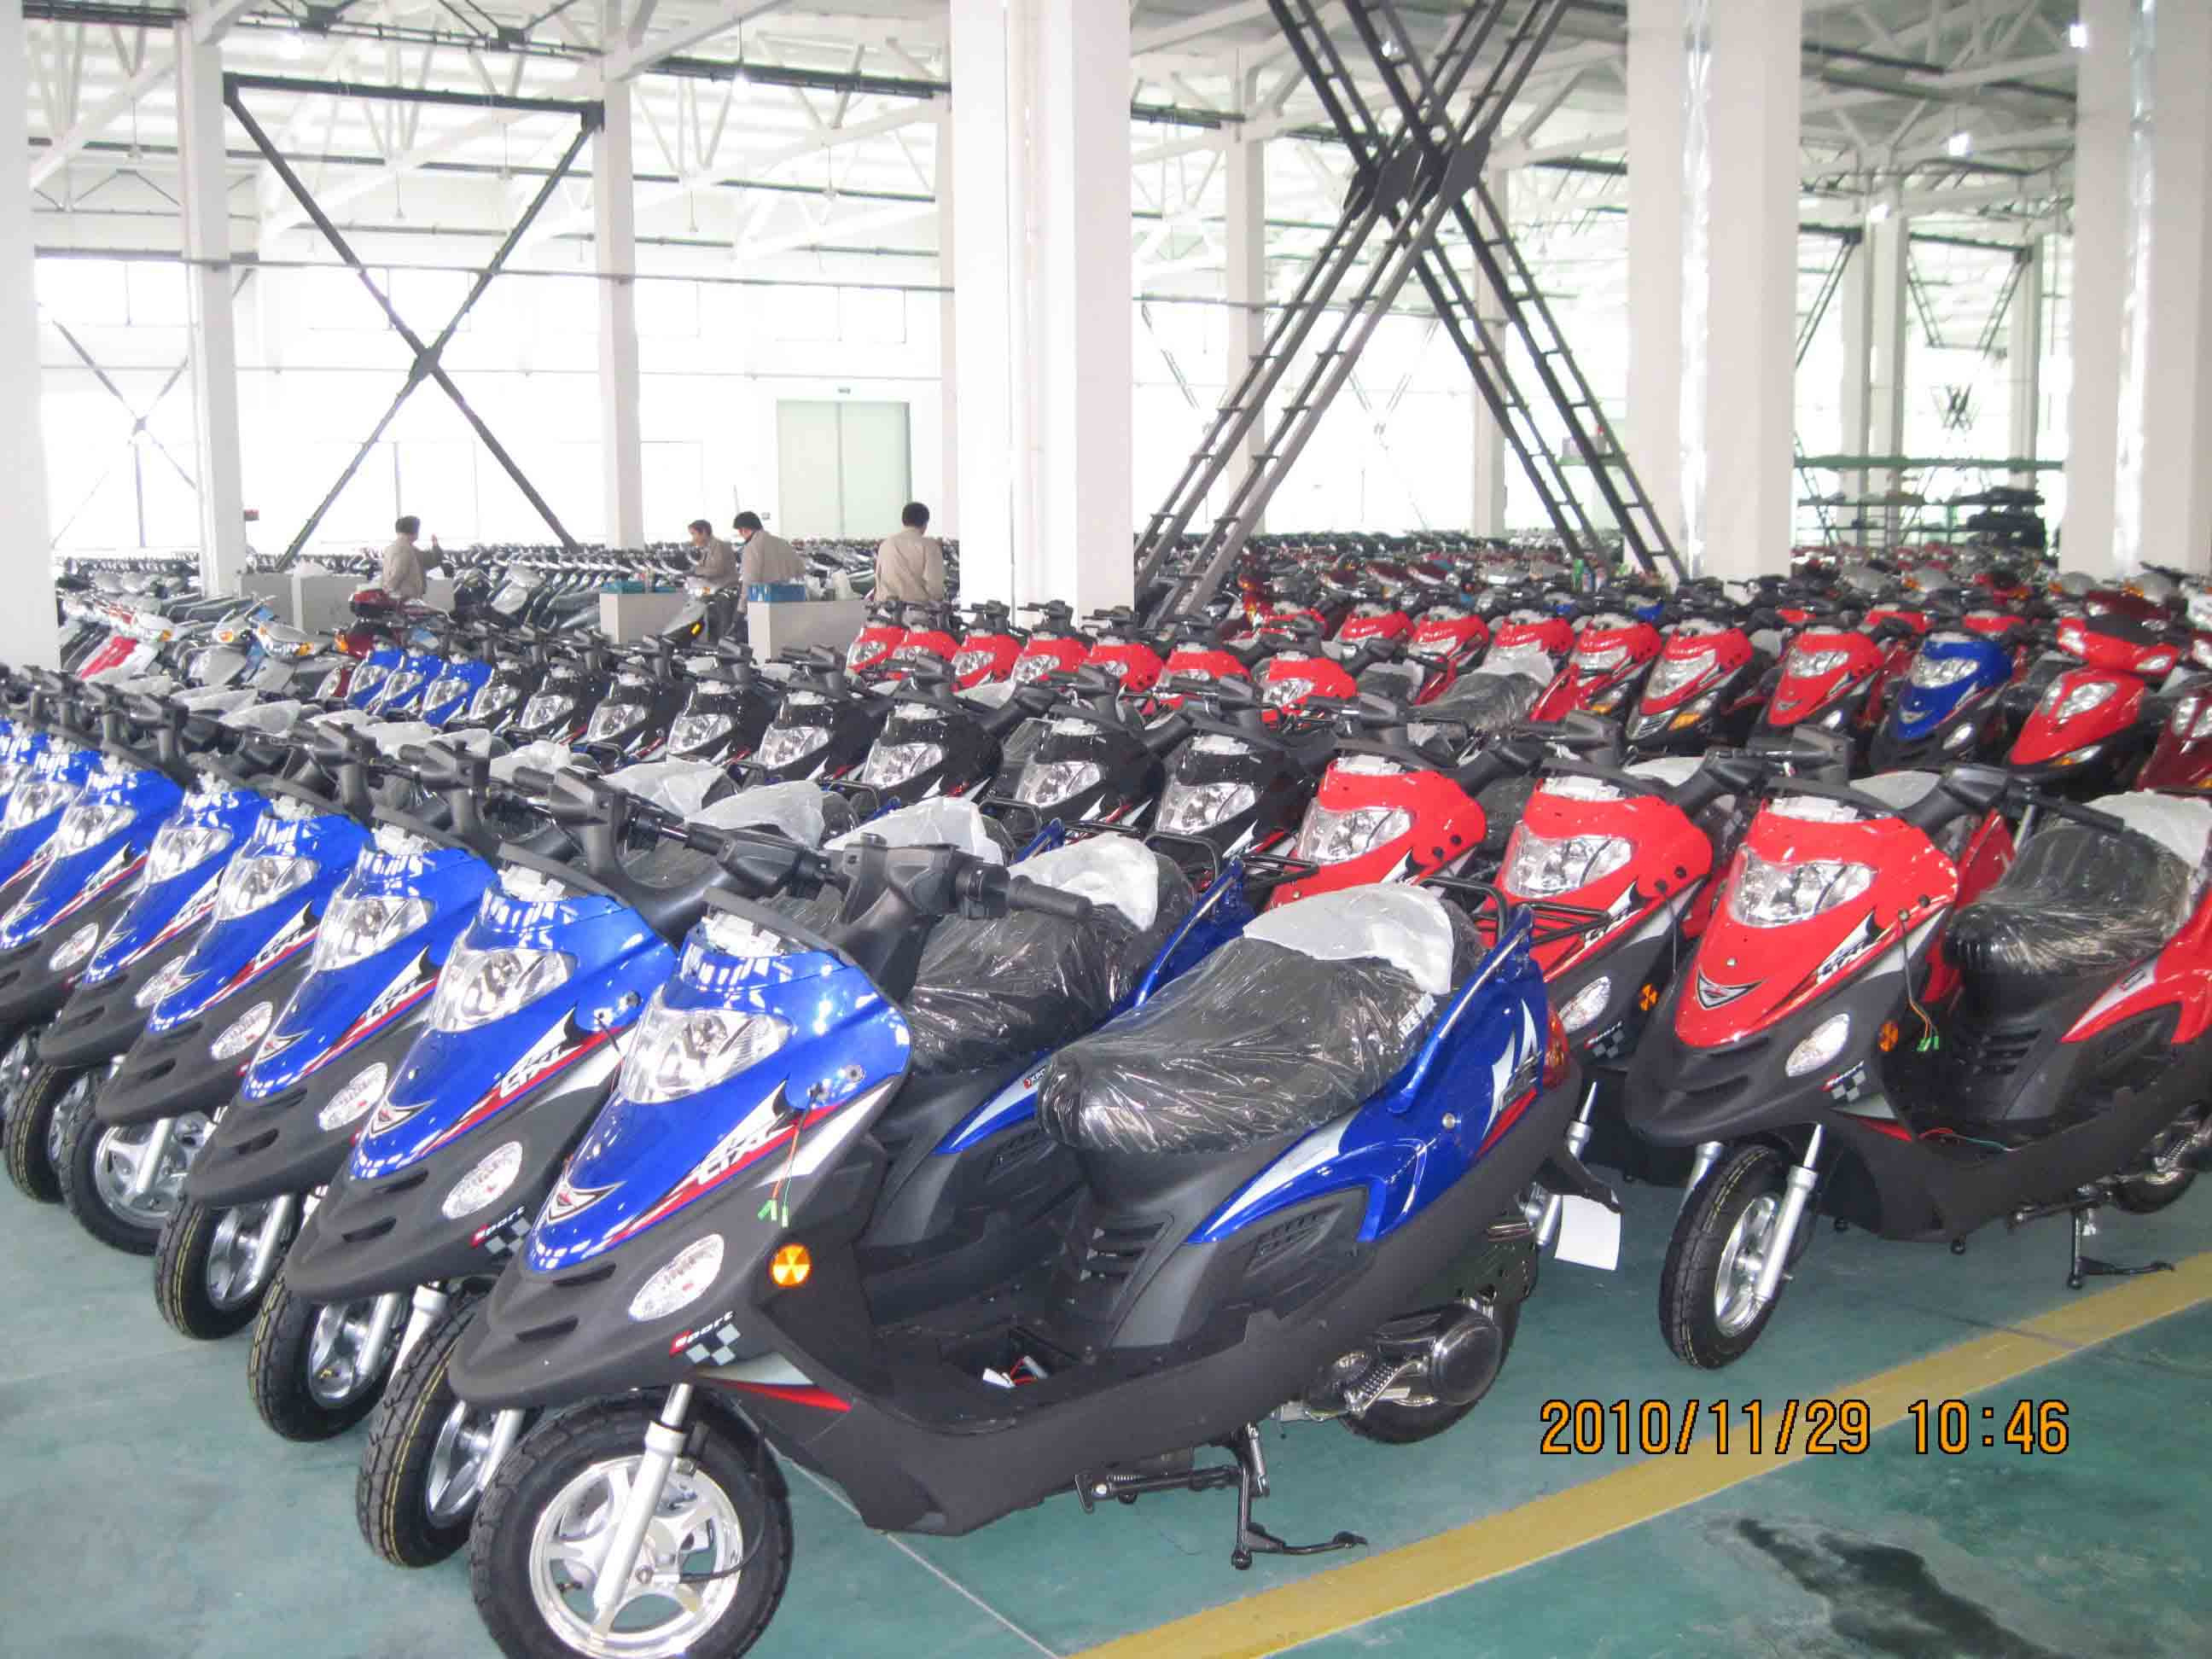 Scooters for East European market